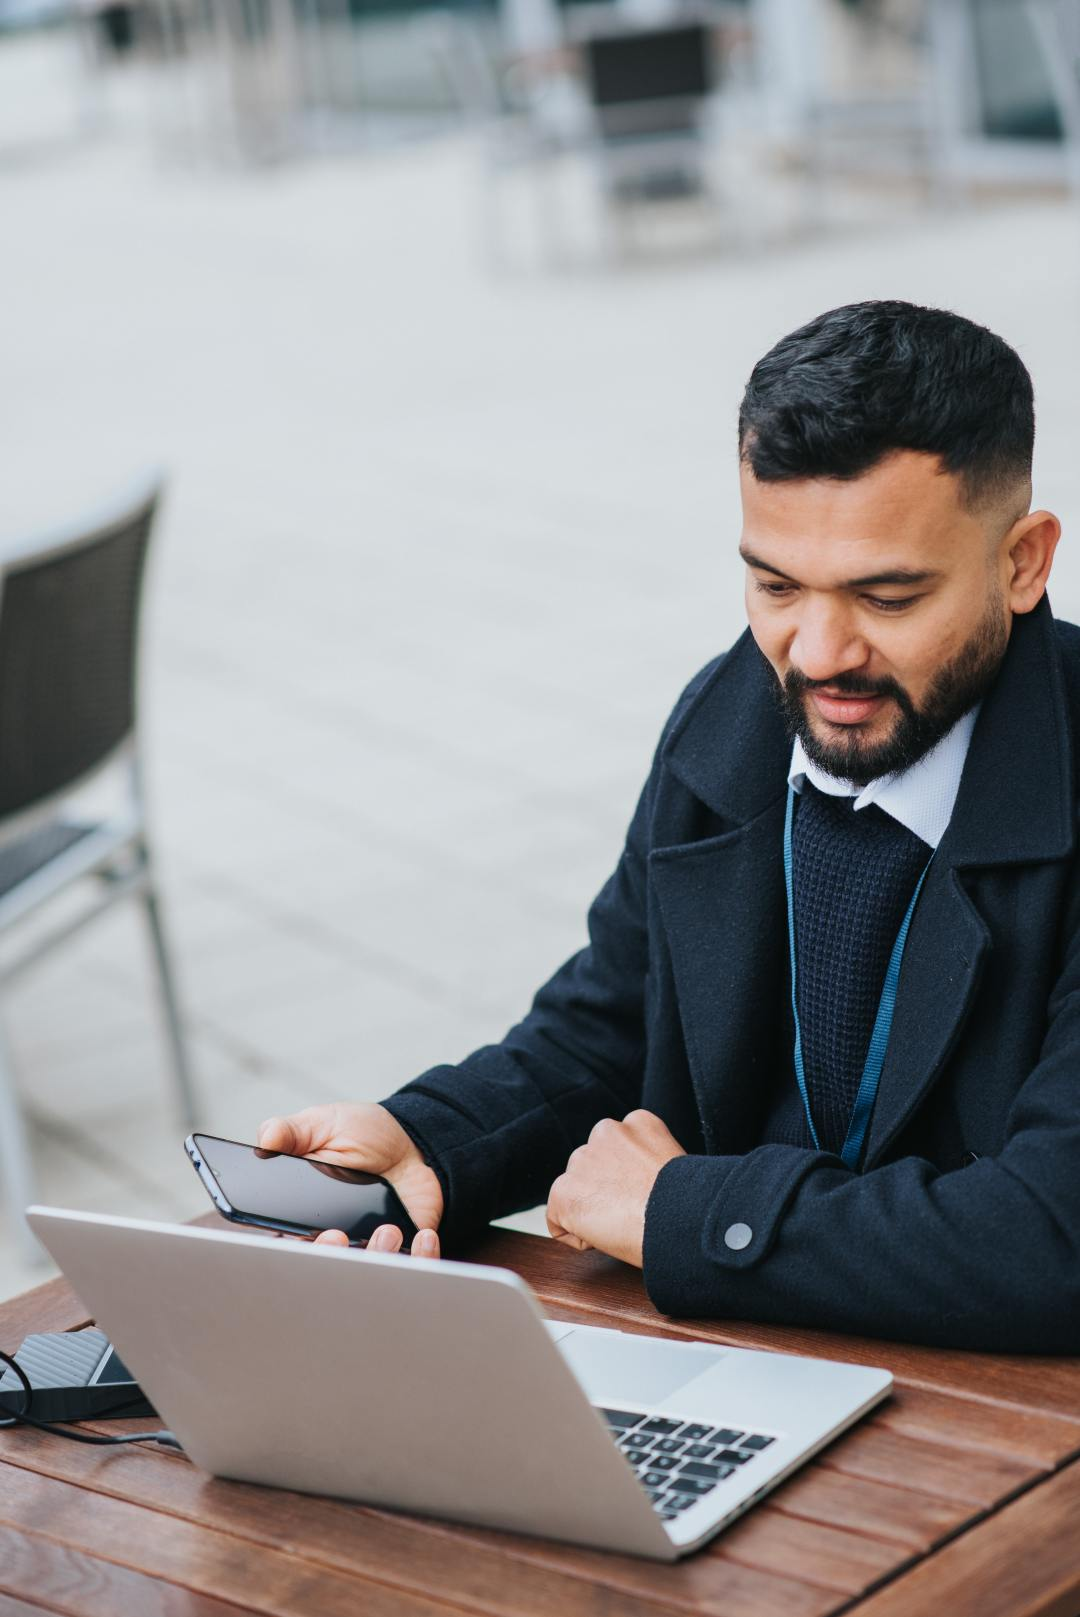 A man sitting and looking at his laptop.